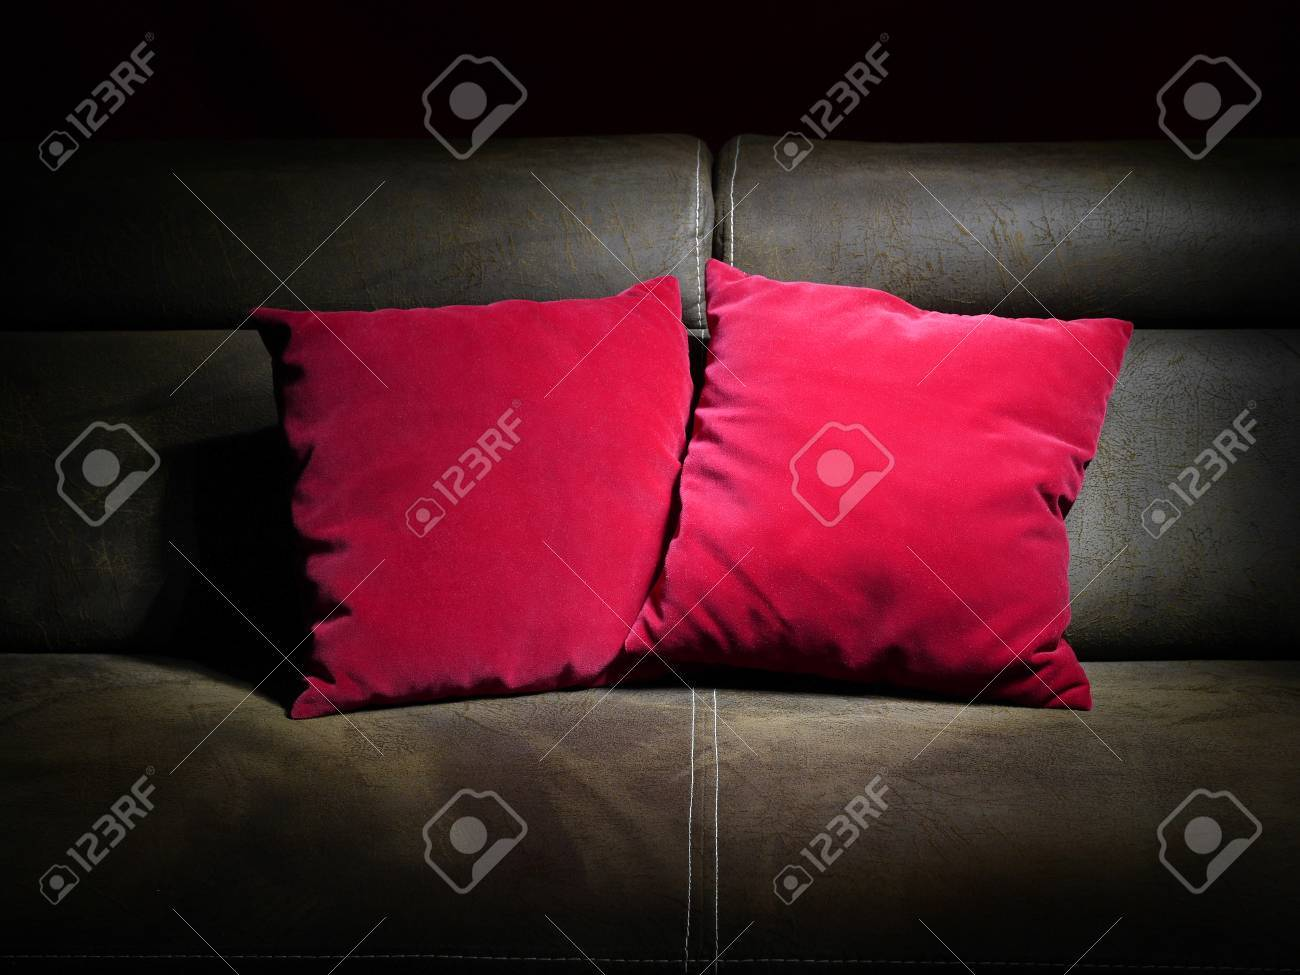 Phenomenal Two Red Pillows On Brown Leather Sofa Alphanode Cool Chair Designs And Ideas Alphanodeonline